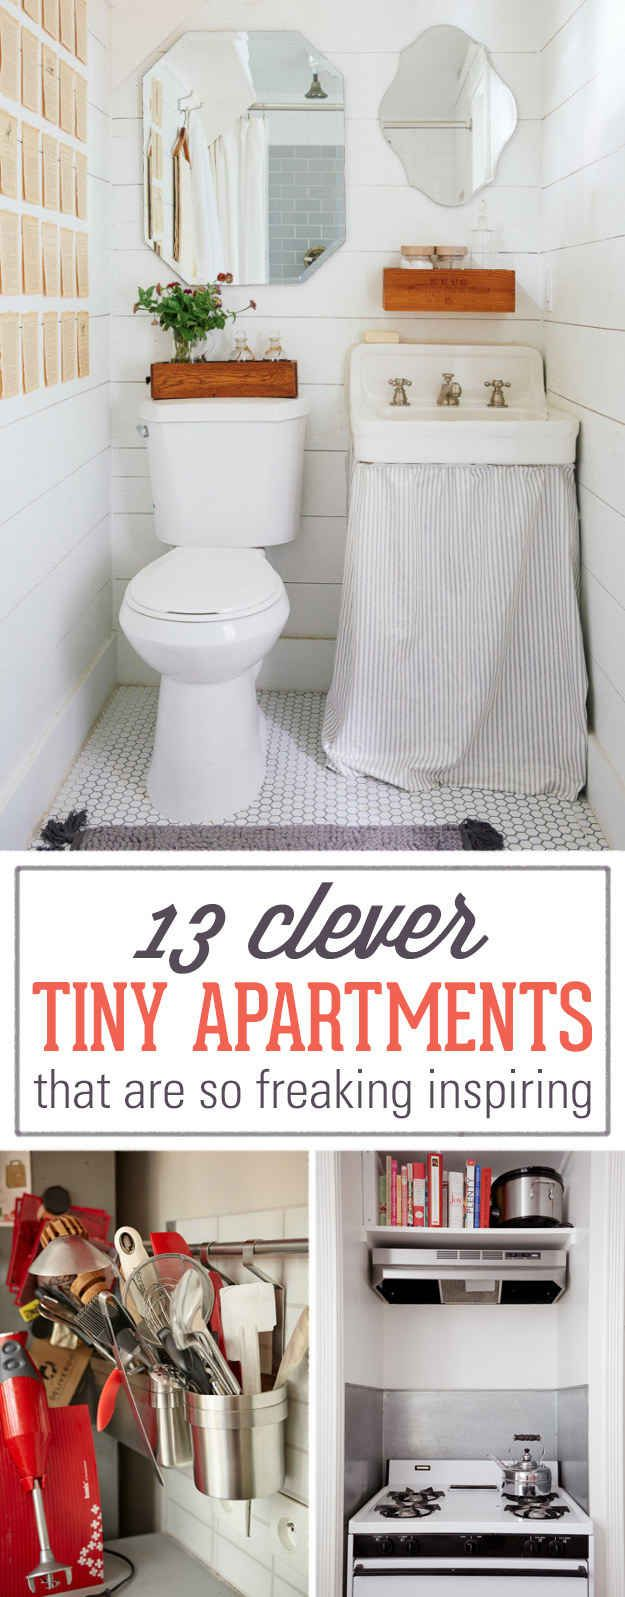 Photo of 13 Clever Tiny Apartments That Are So Freaking Inspiring